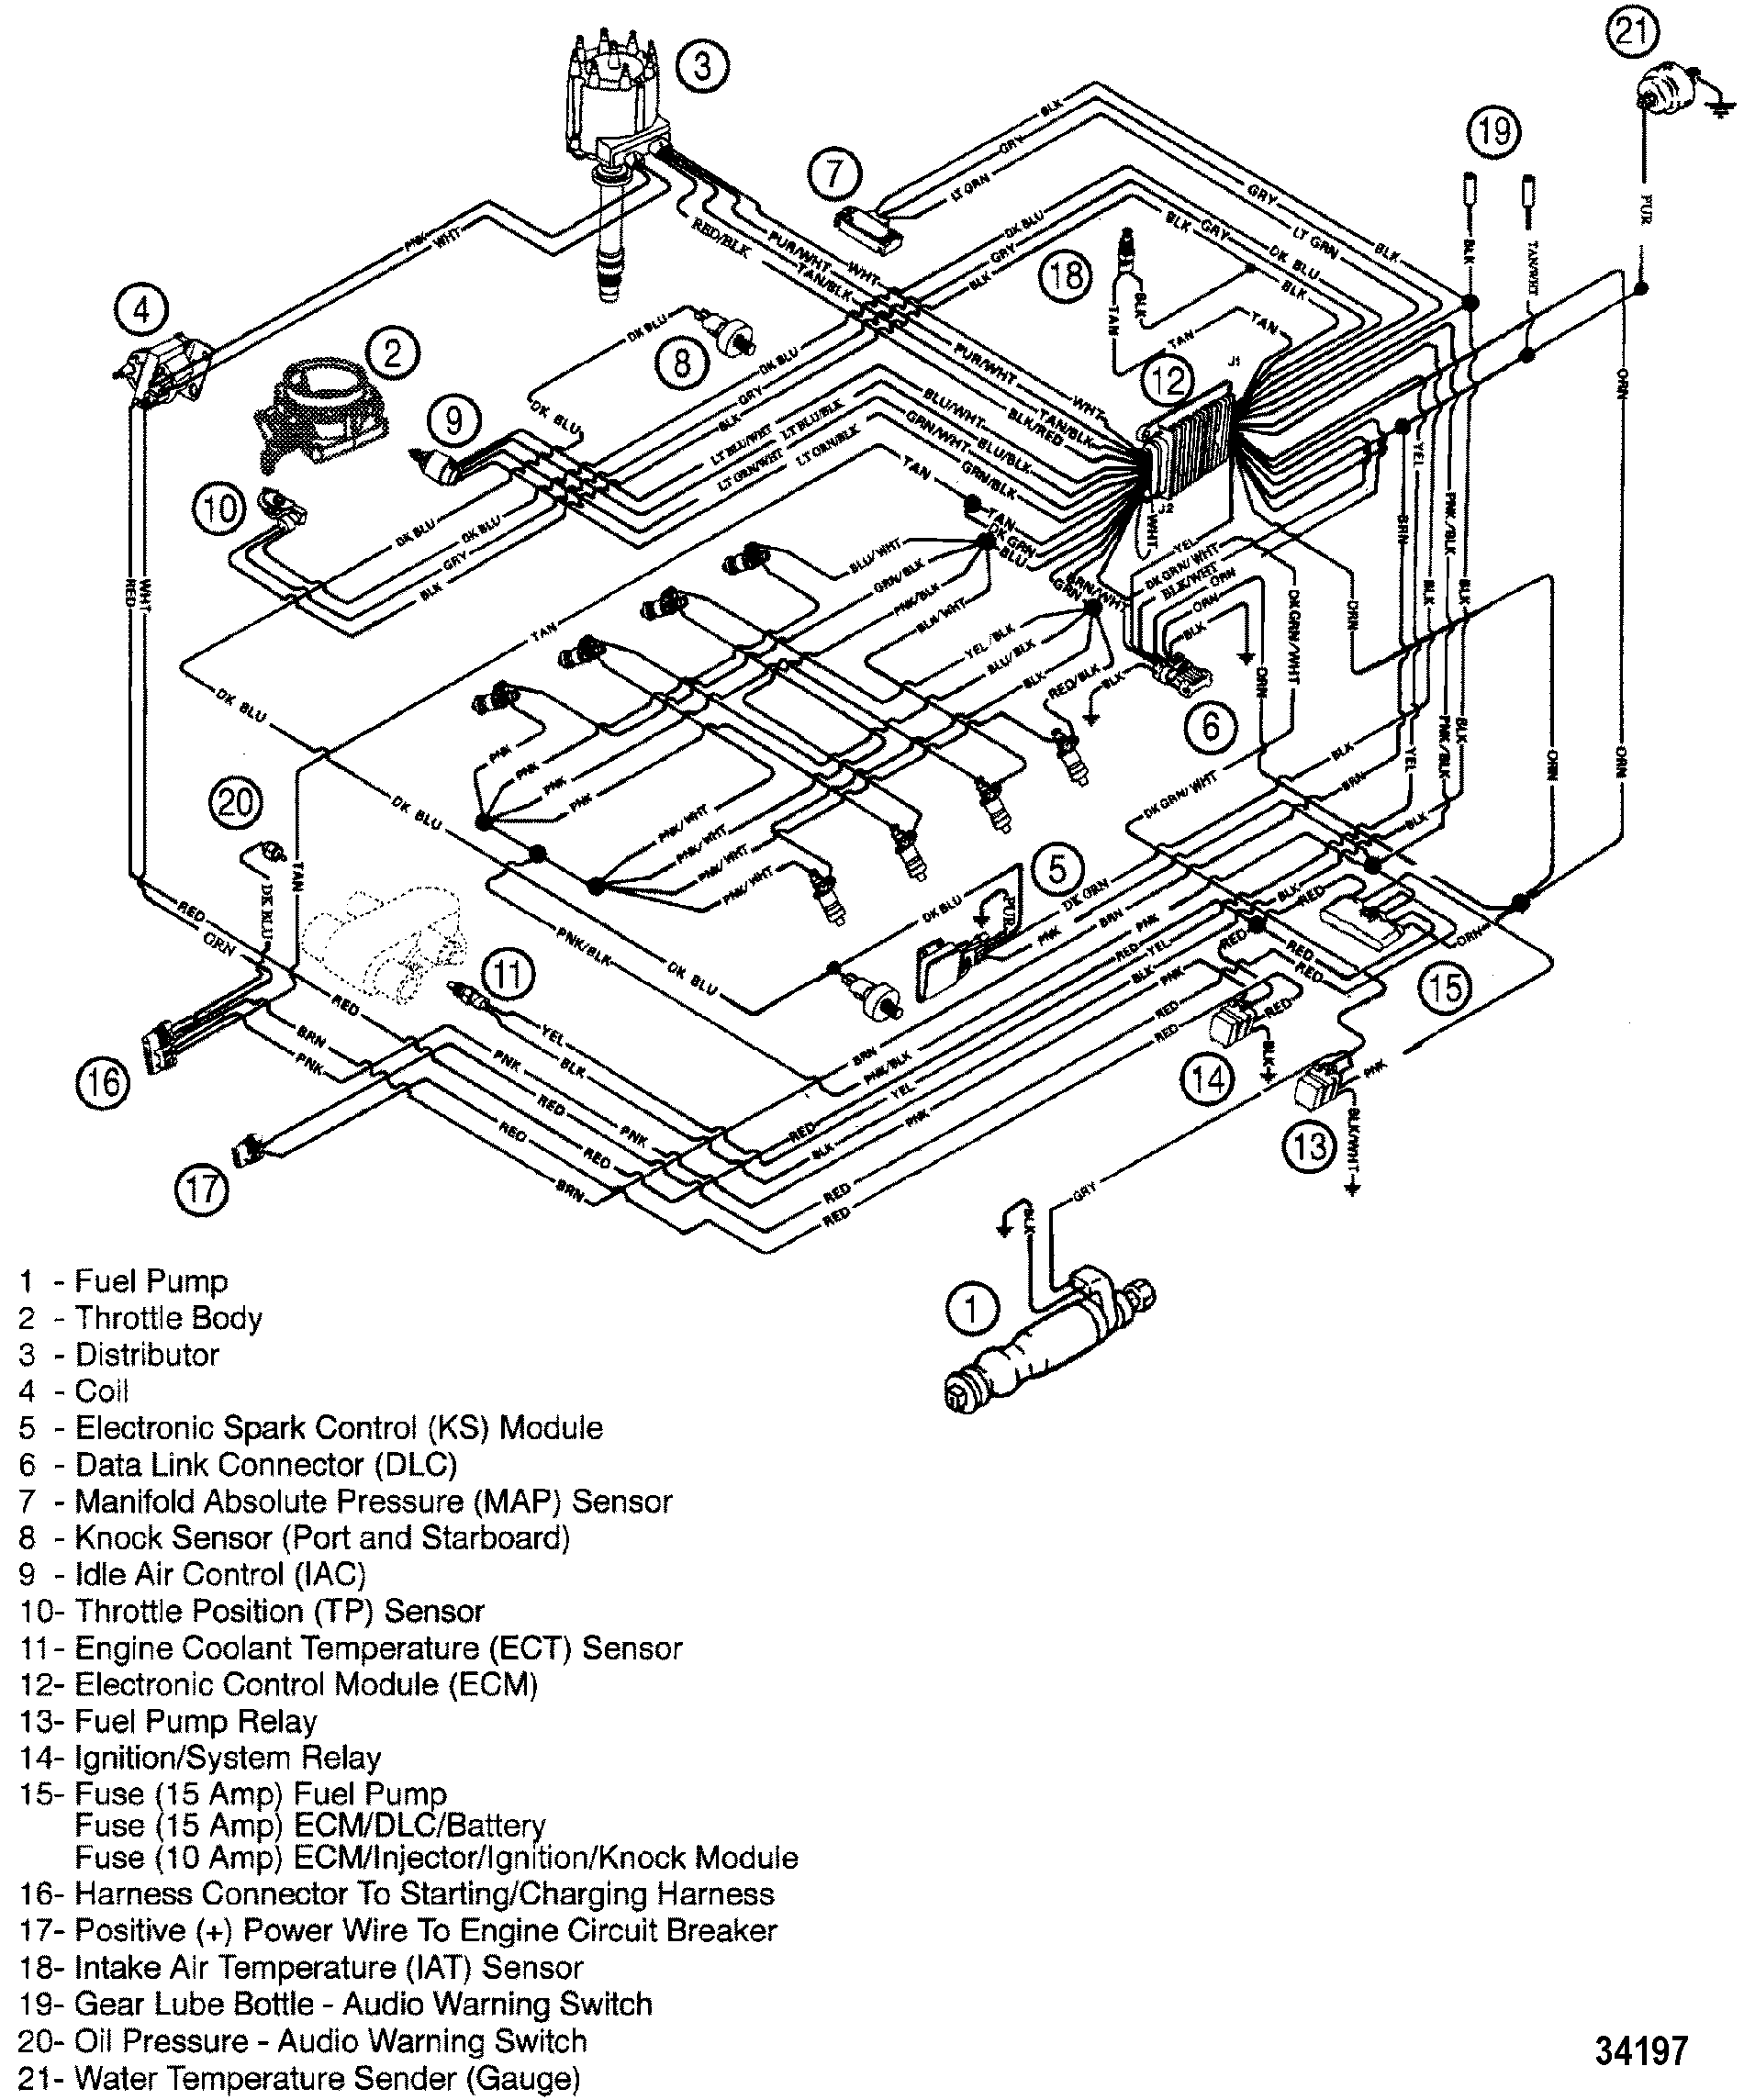 hight resolution of 1989 mercruiser 7 4 engine diagram wiring diagram toolbox mercruiser wiring diagram 1987 mercruiser 7 4